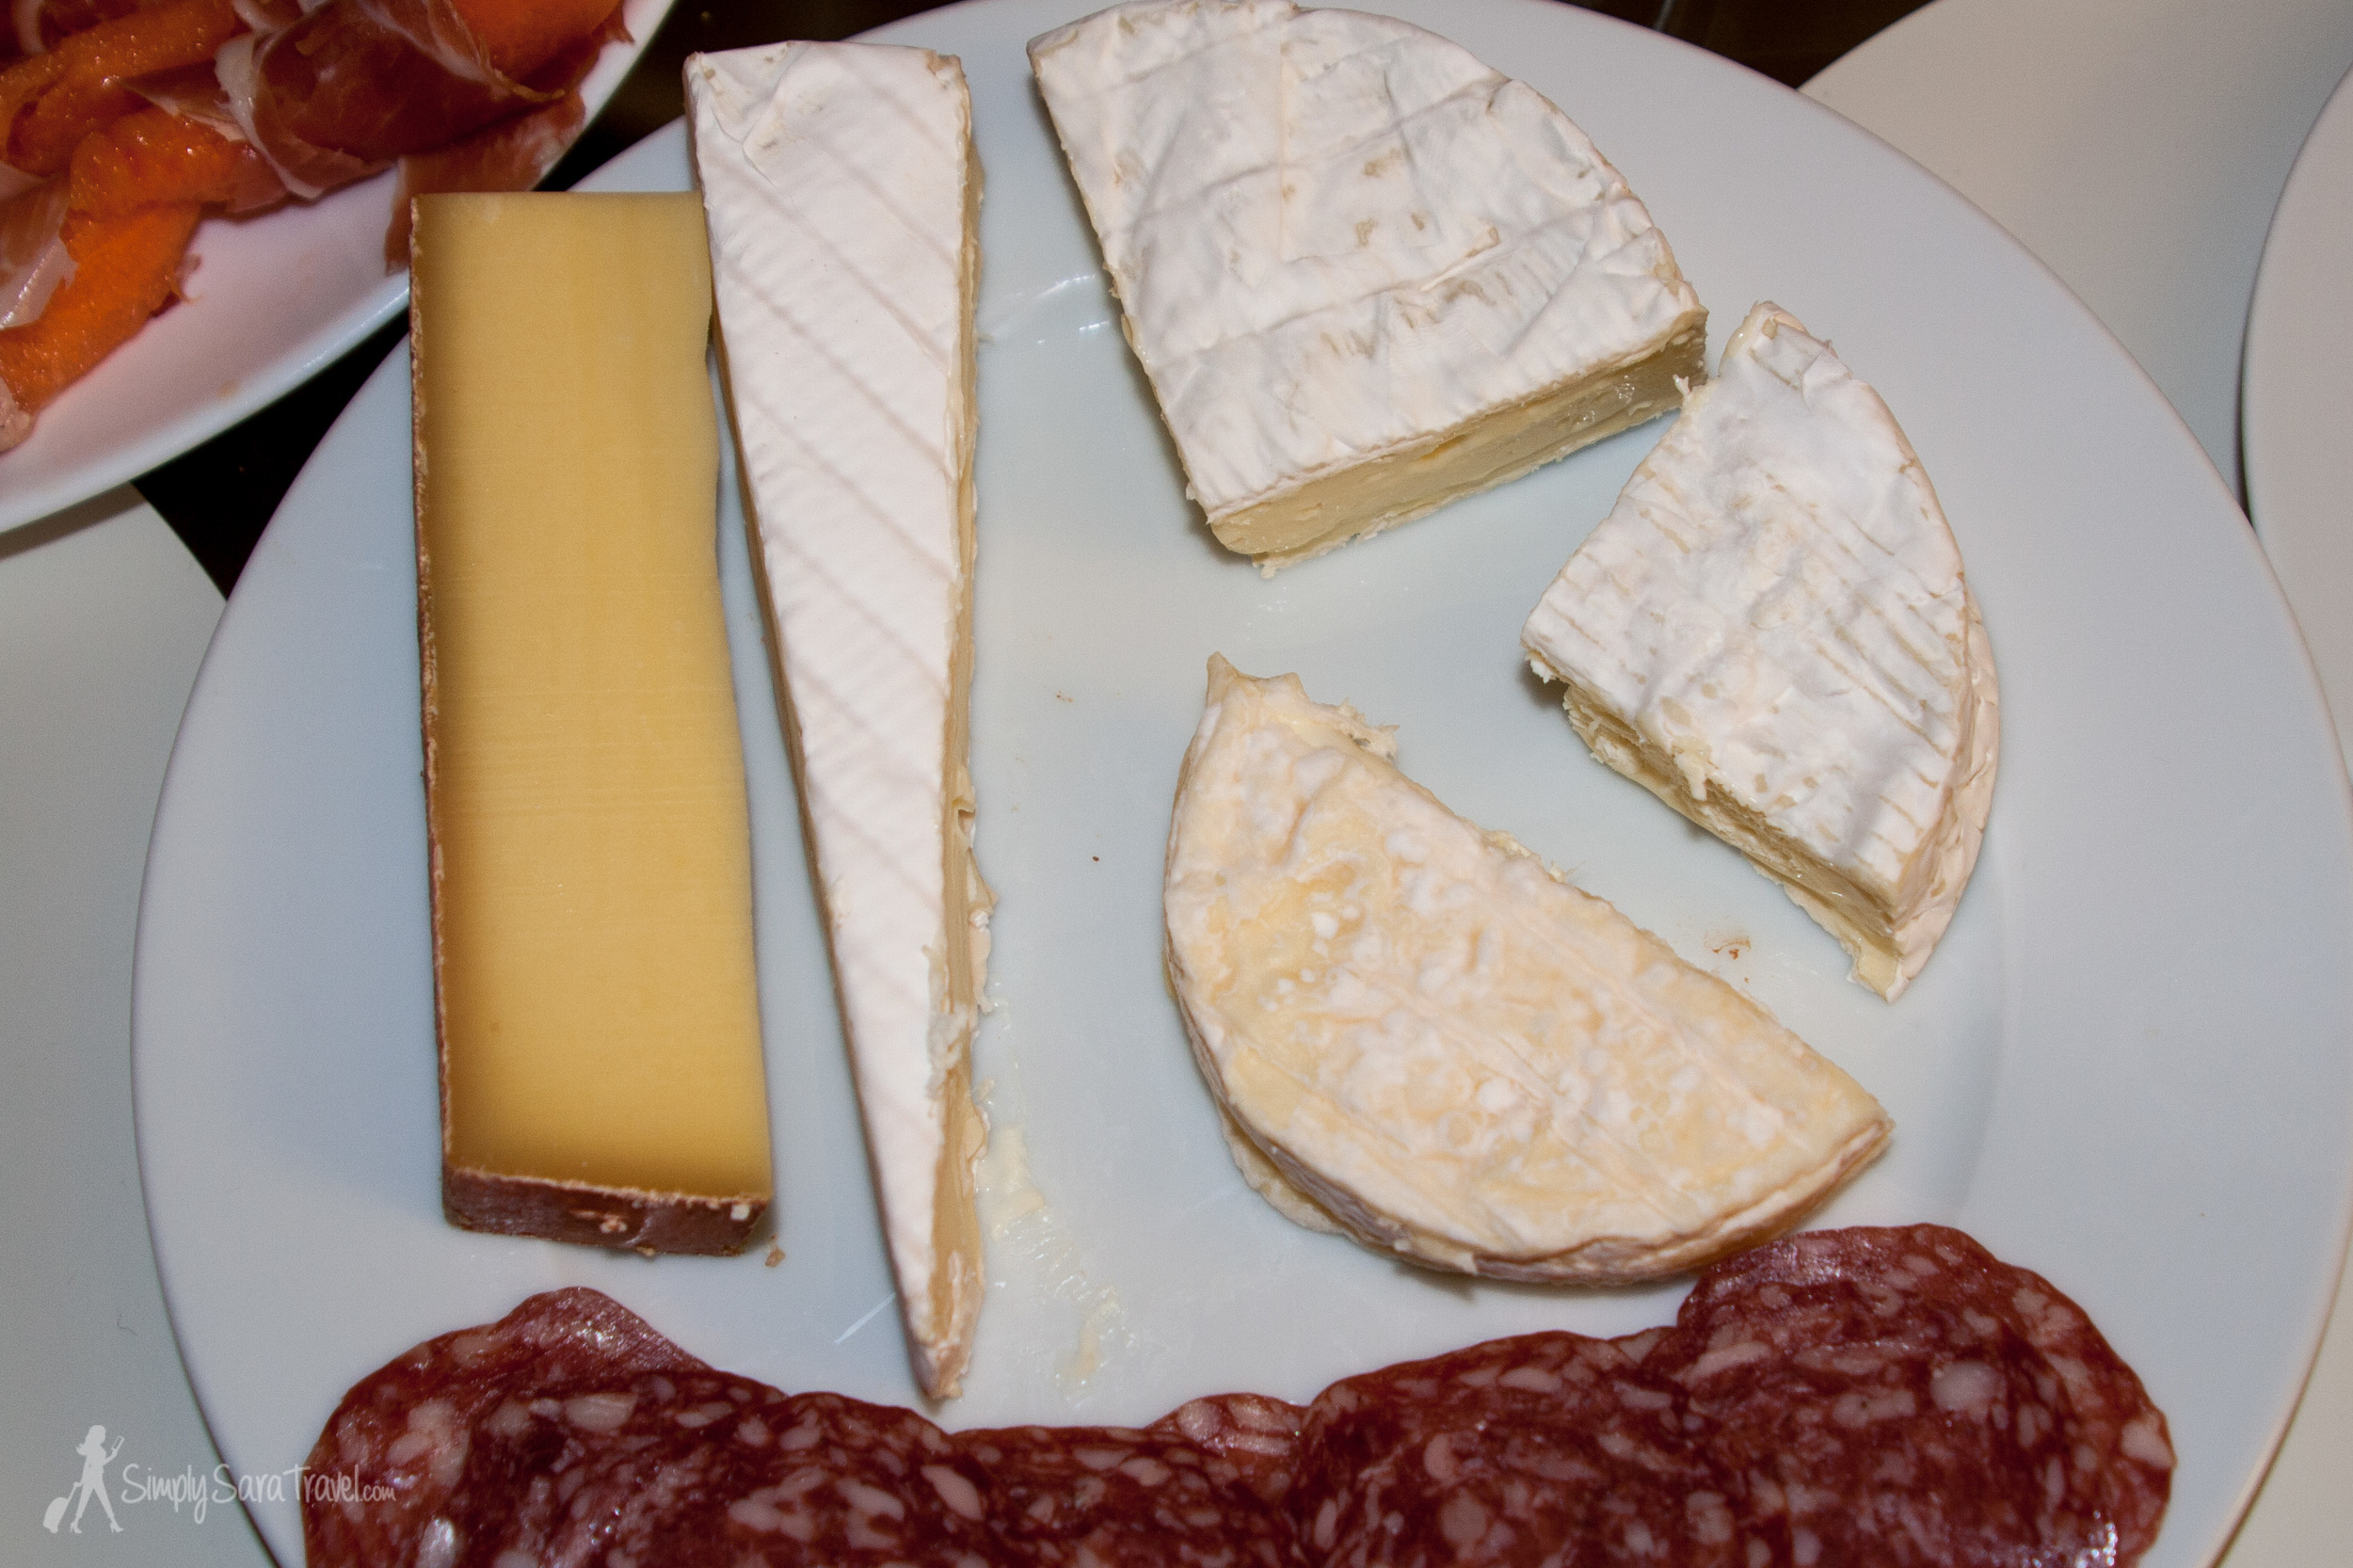 Exhibit B: This though, may be the best indication of my early days in France. My cheese plate looks like it is sufficient for one French person. We did have more on hand, but we couldn't imagine going through all the cheese on the plate in one night so we held off before replenishing the supply.